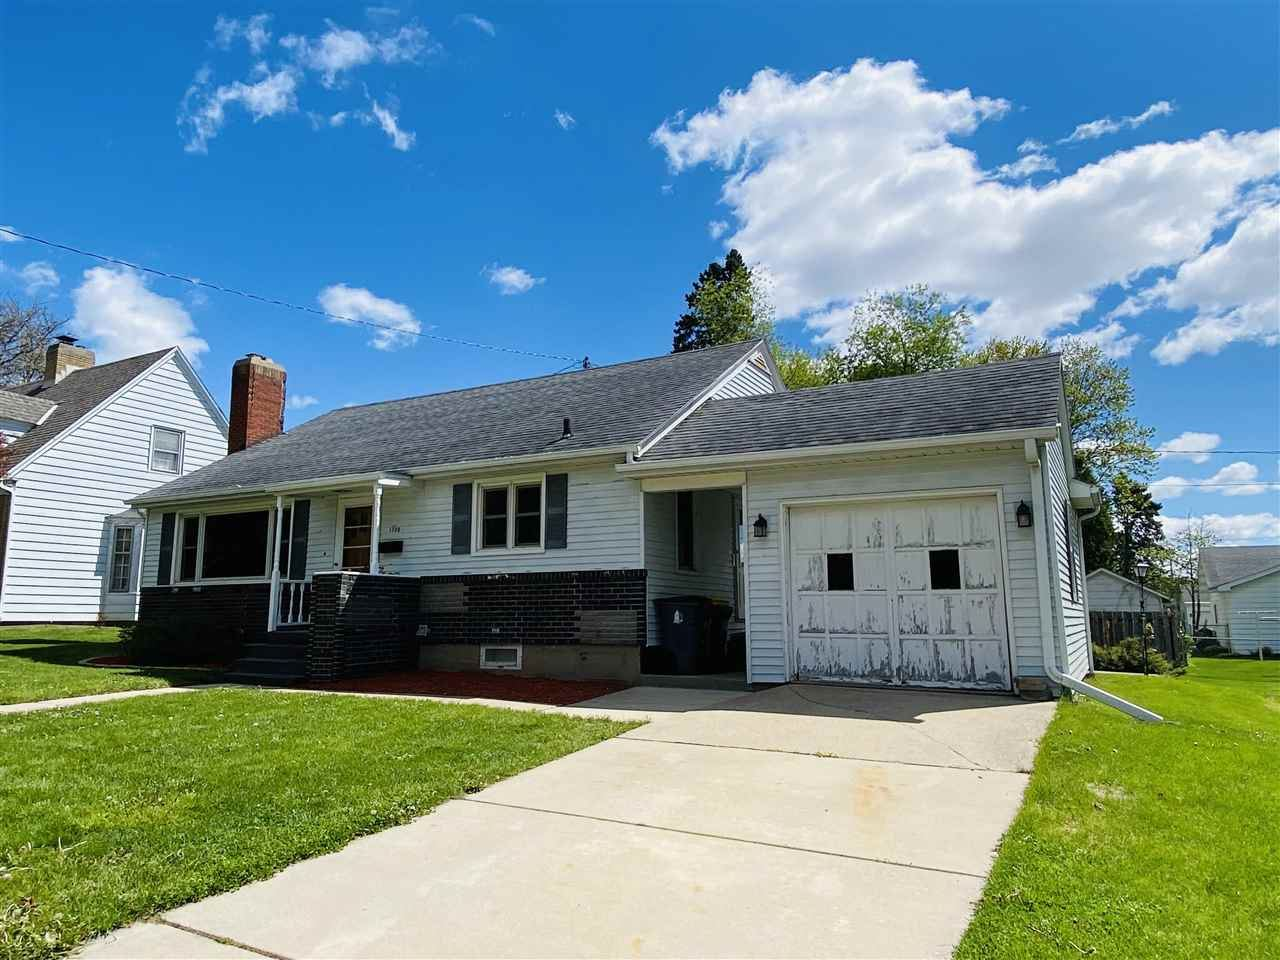 1706 20th Ave, Monroe, WI 53566 - #: 1908462